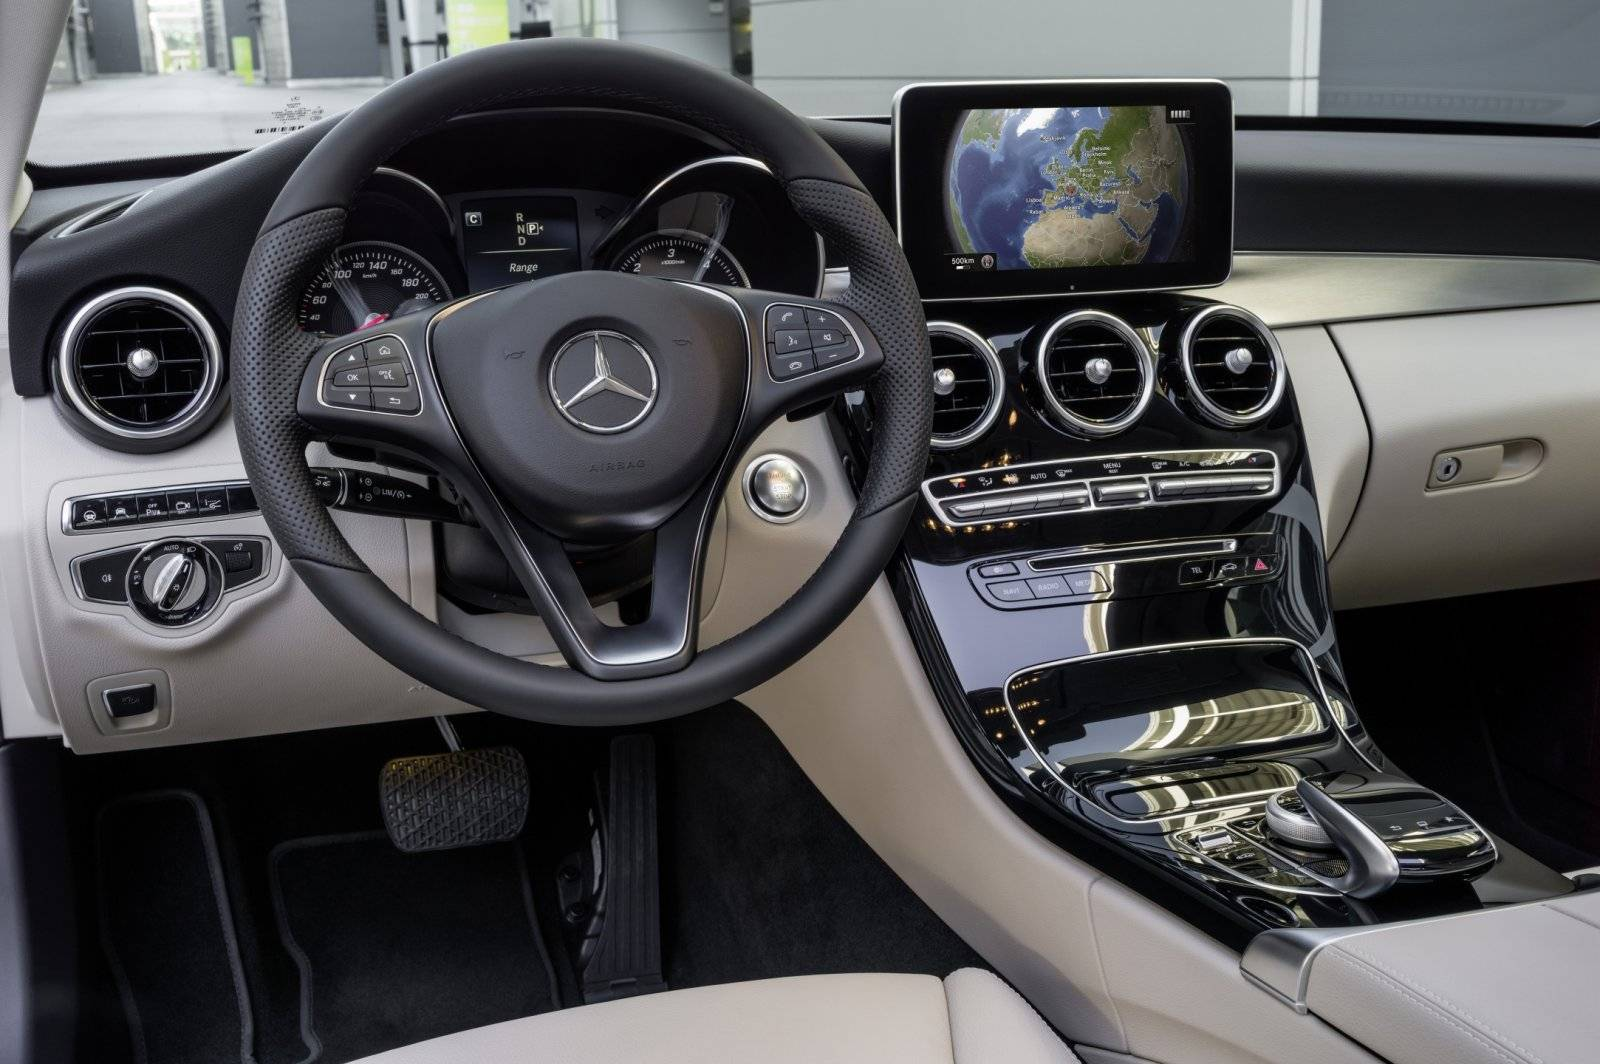 in detail de nieuwe mercedes c klasse autonieuws. Black Bedroom Furniture Sets. Home Design Ideas